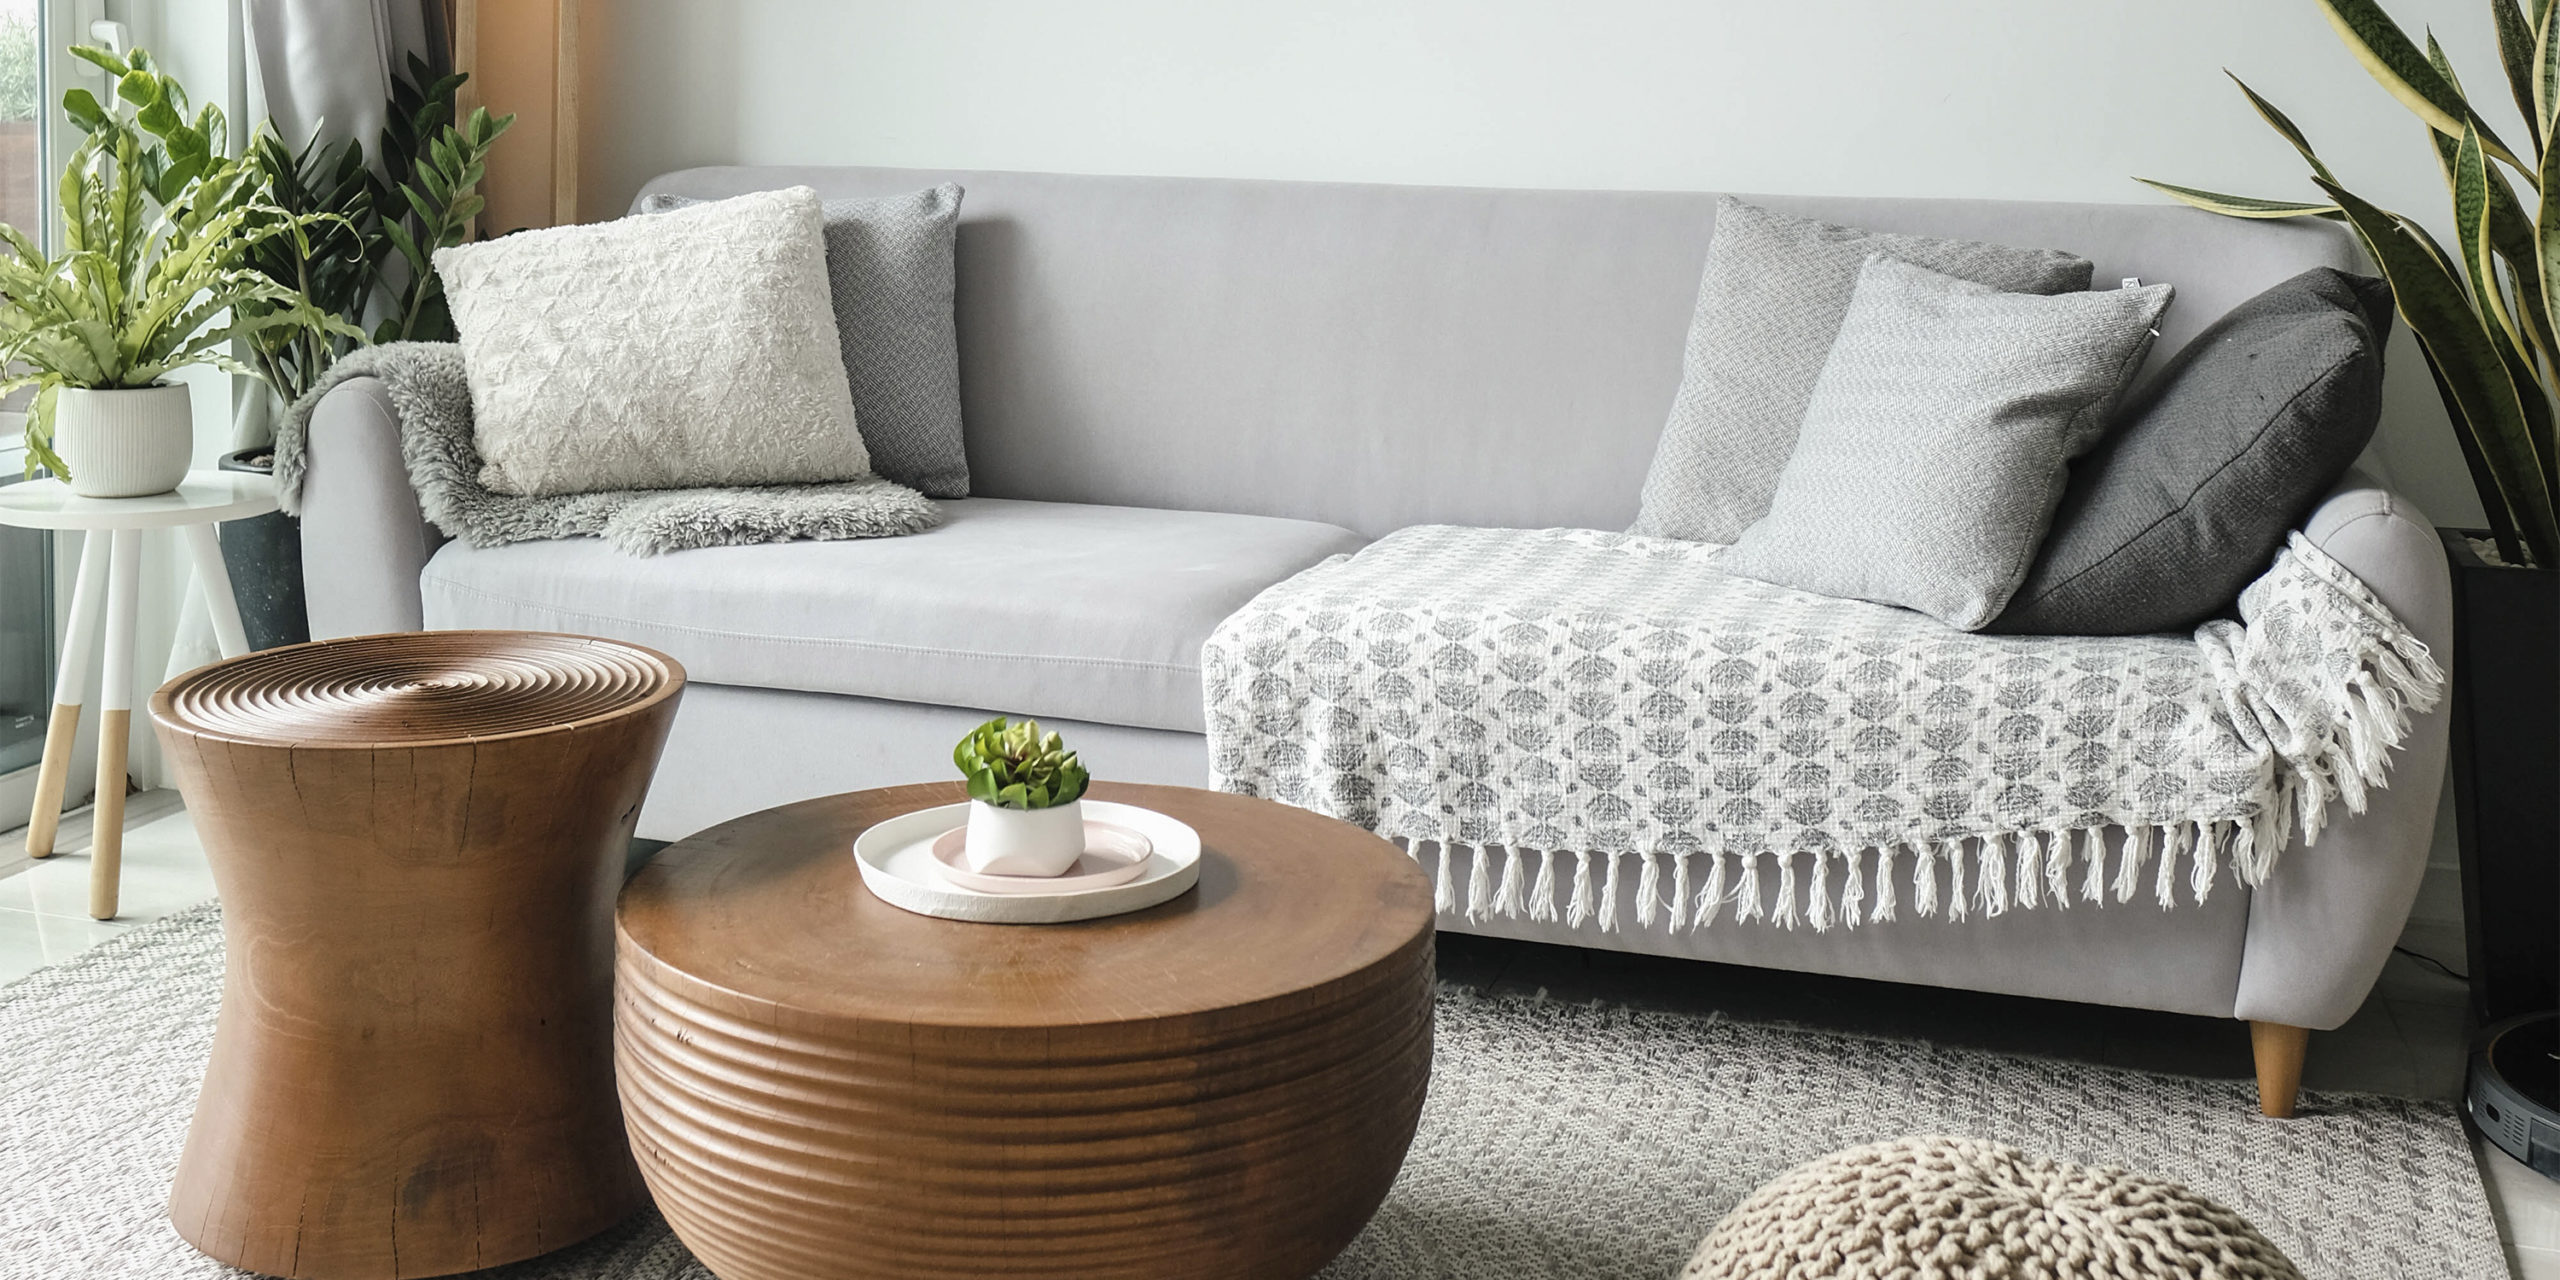 Example of choosing rugs for the living room